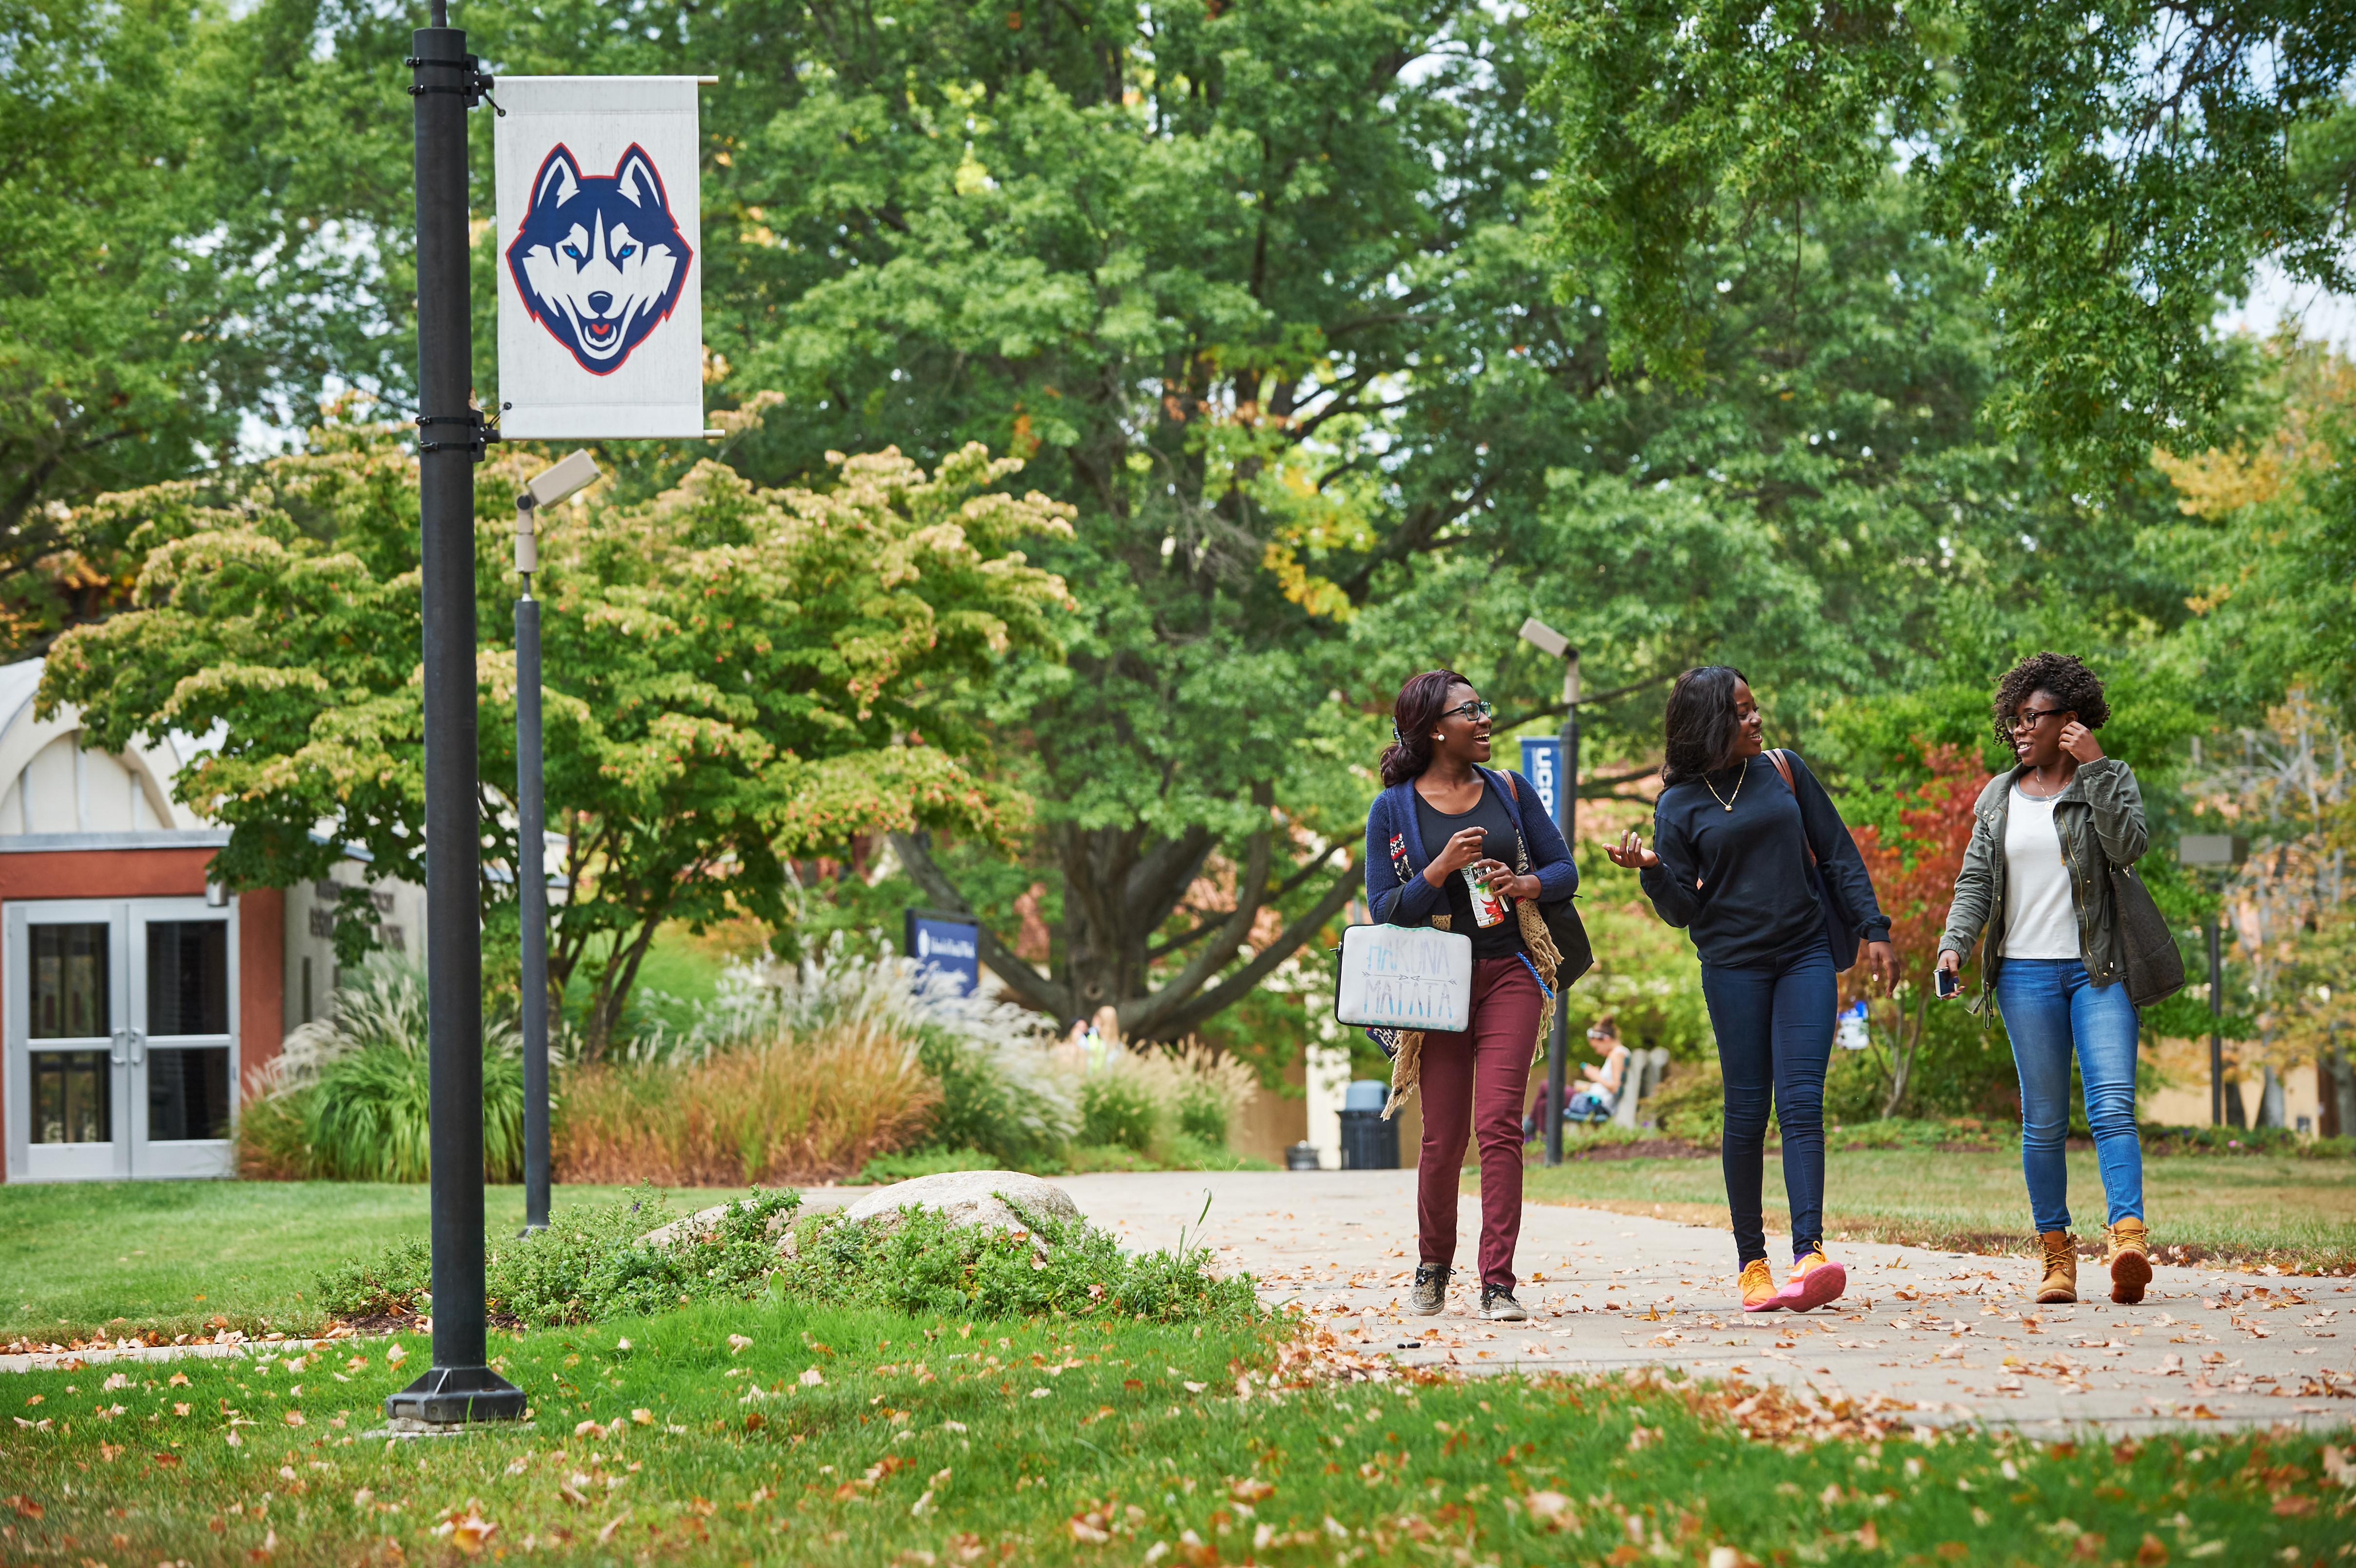 In this 2015 photo, students walk outdoors near banners on the Hartford campus. (Peter Morenus/UConn Photo)